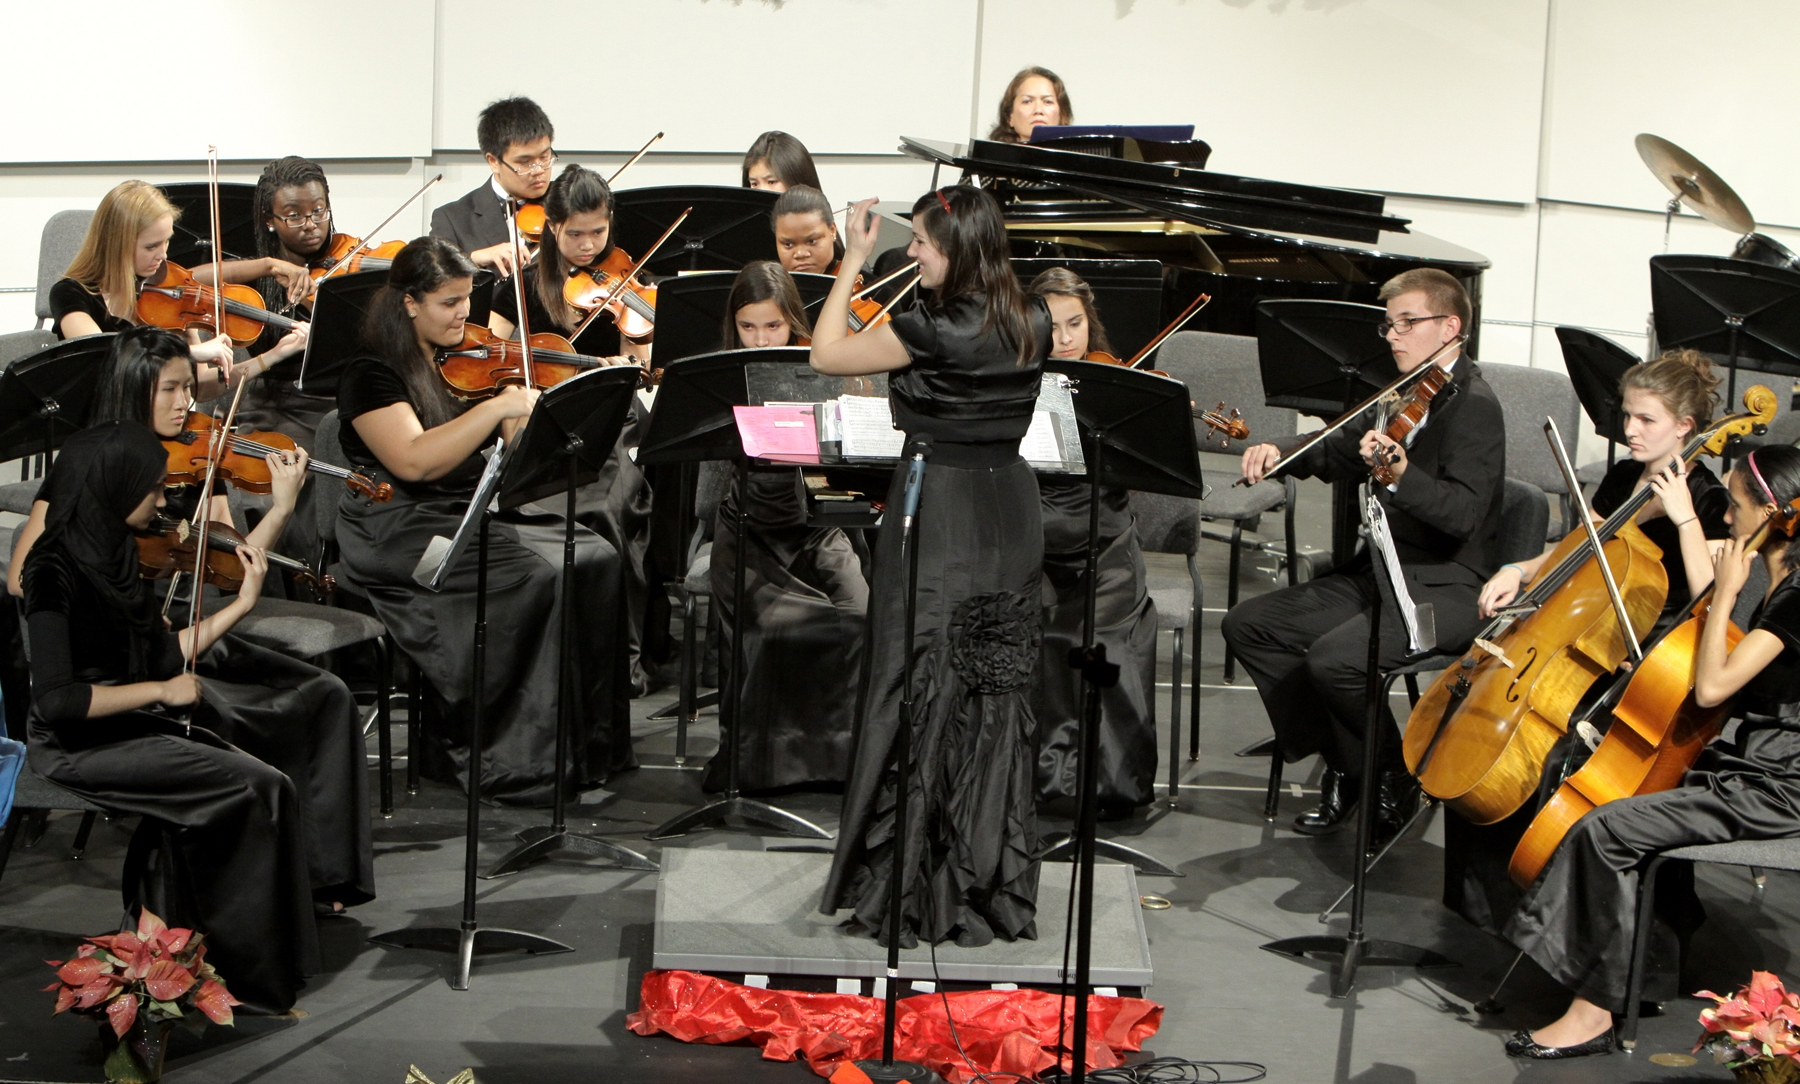 UC graduate Angela Ammerman leading an orchestra.